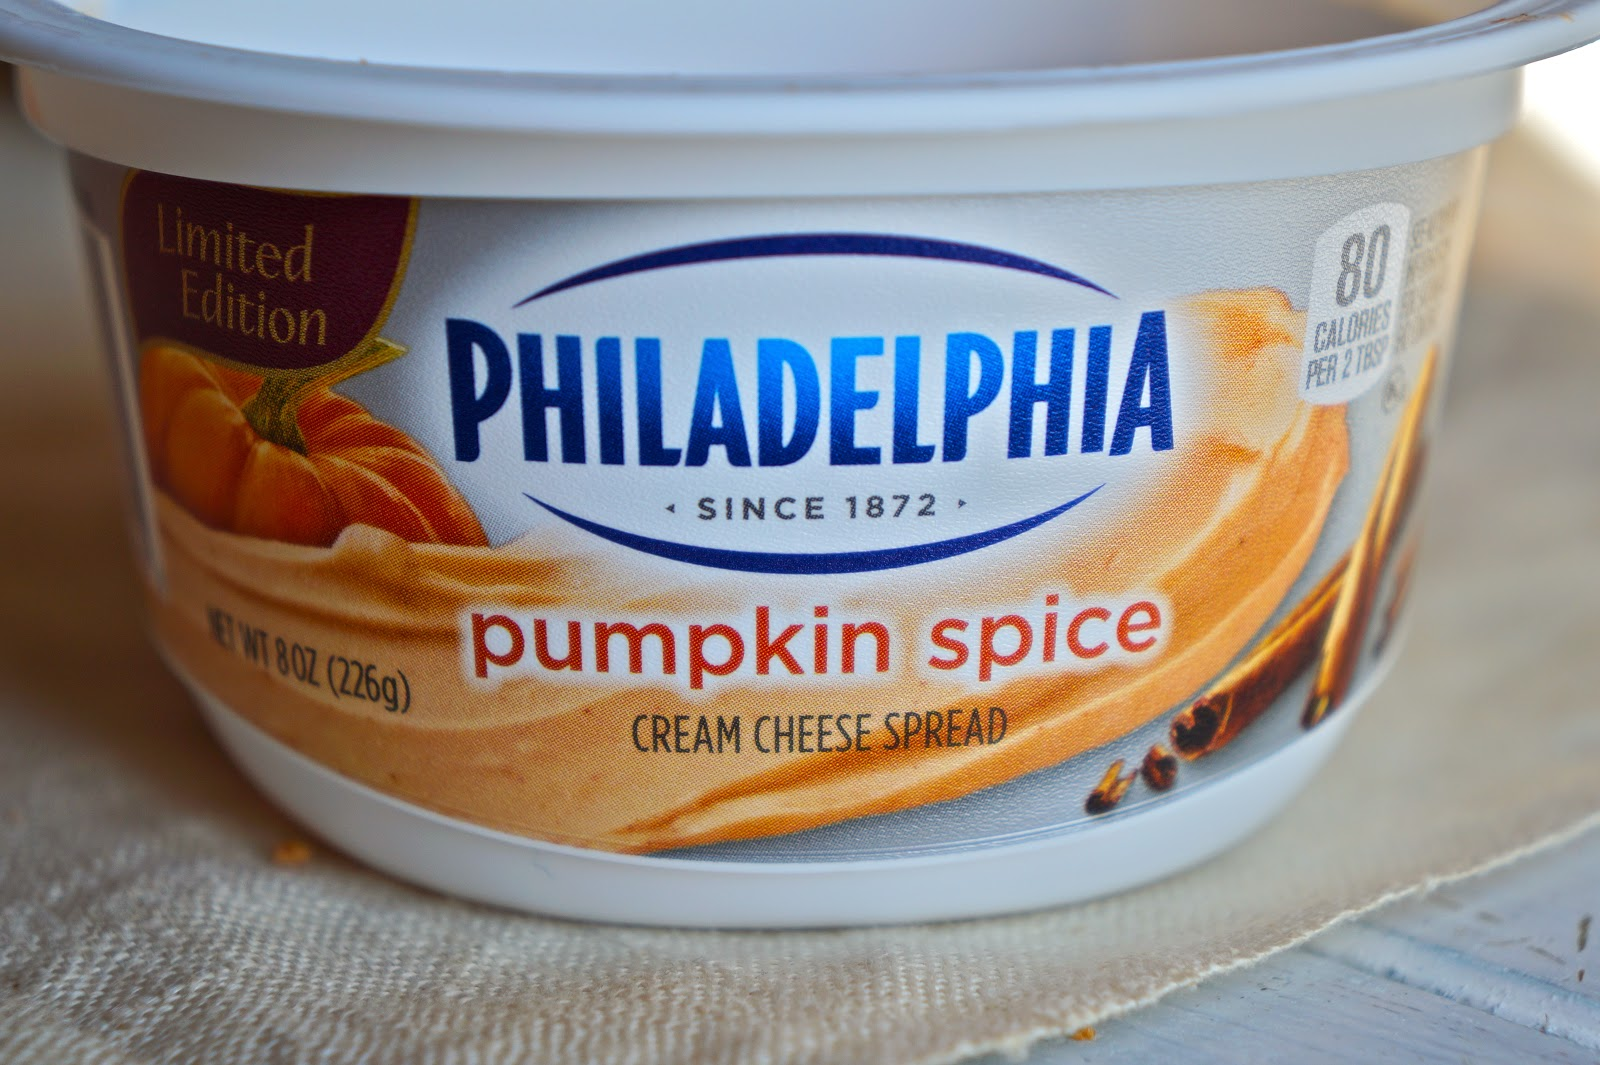 pumpkin spice cream cheese spread